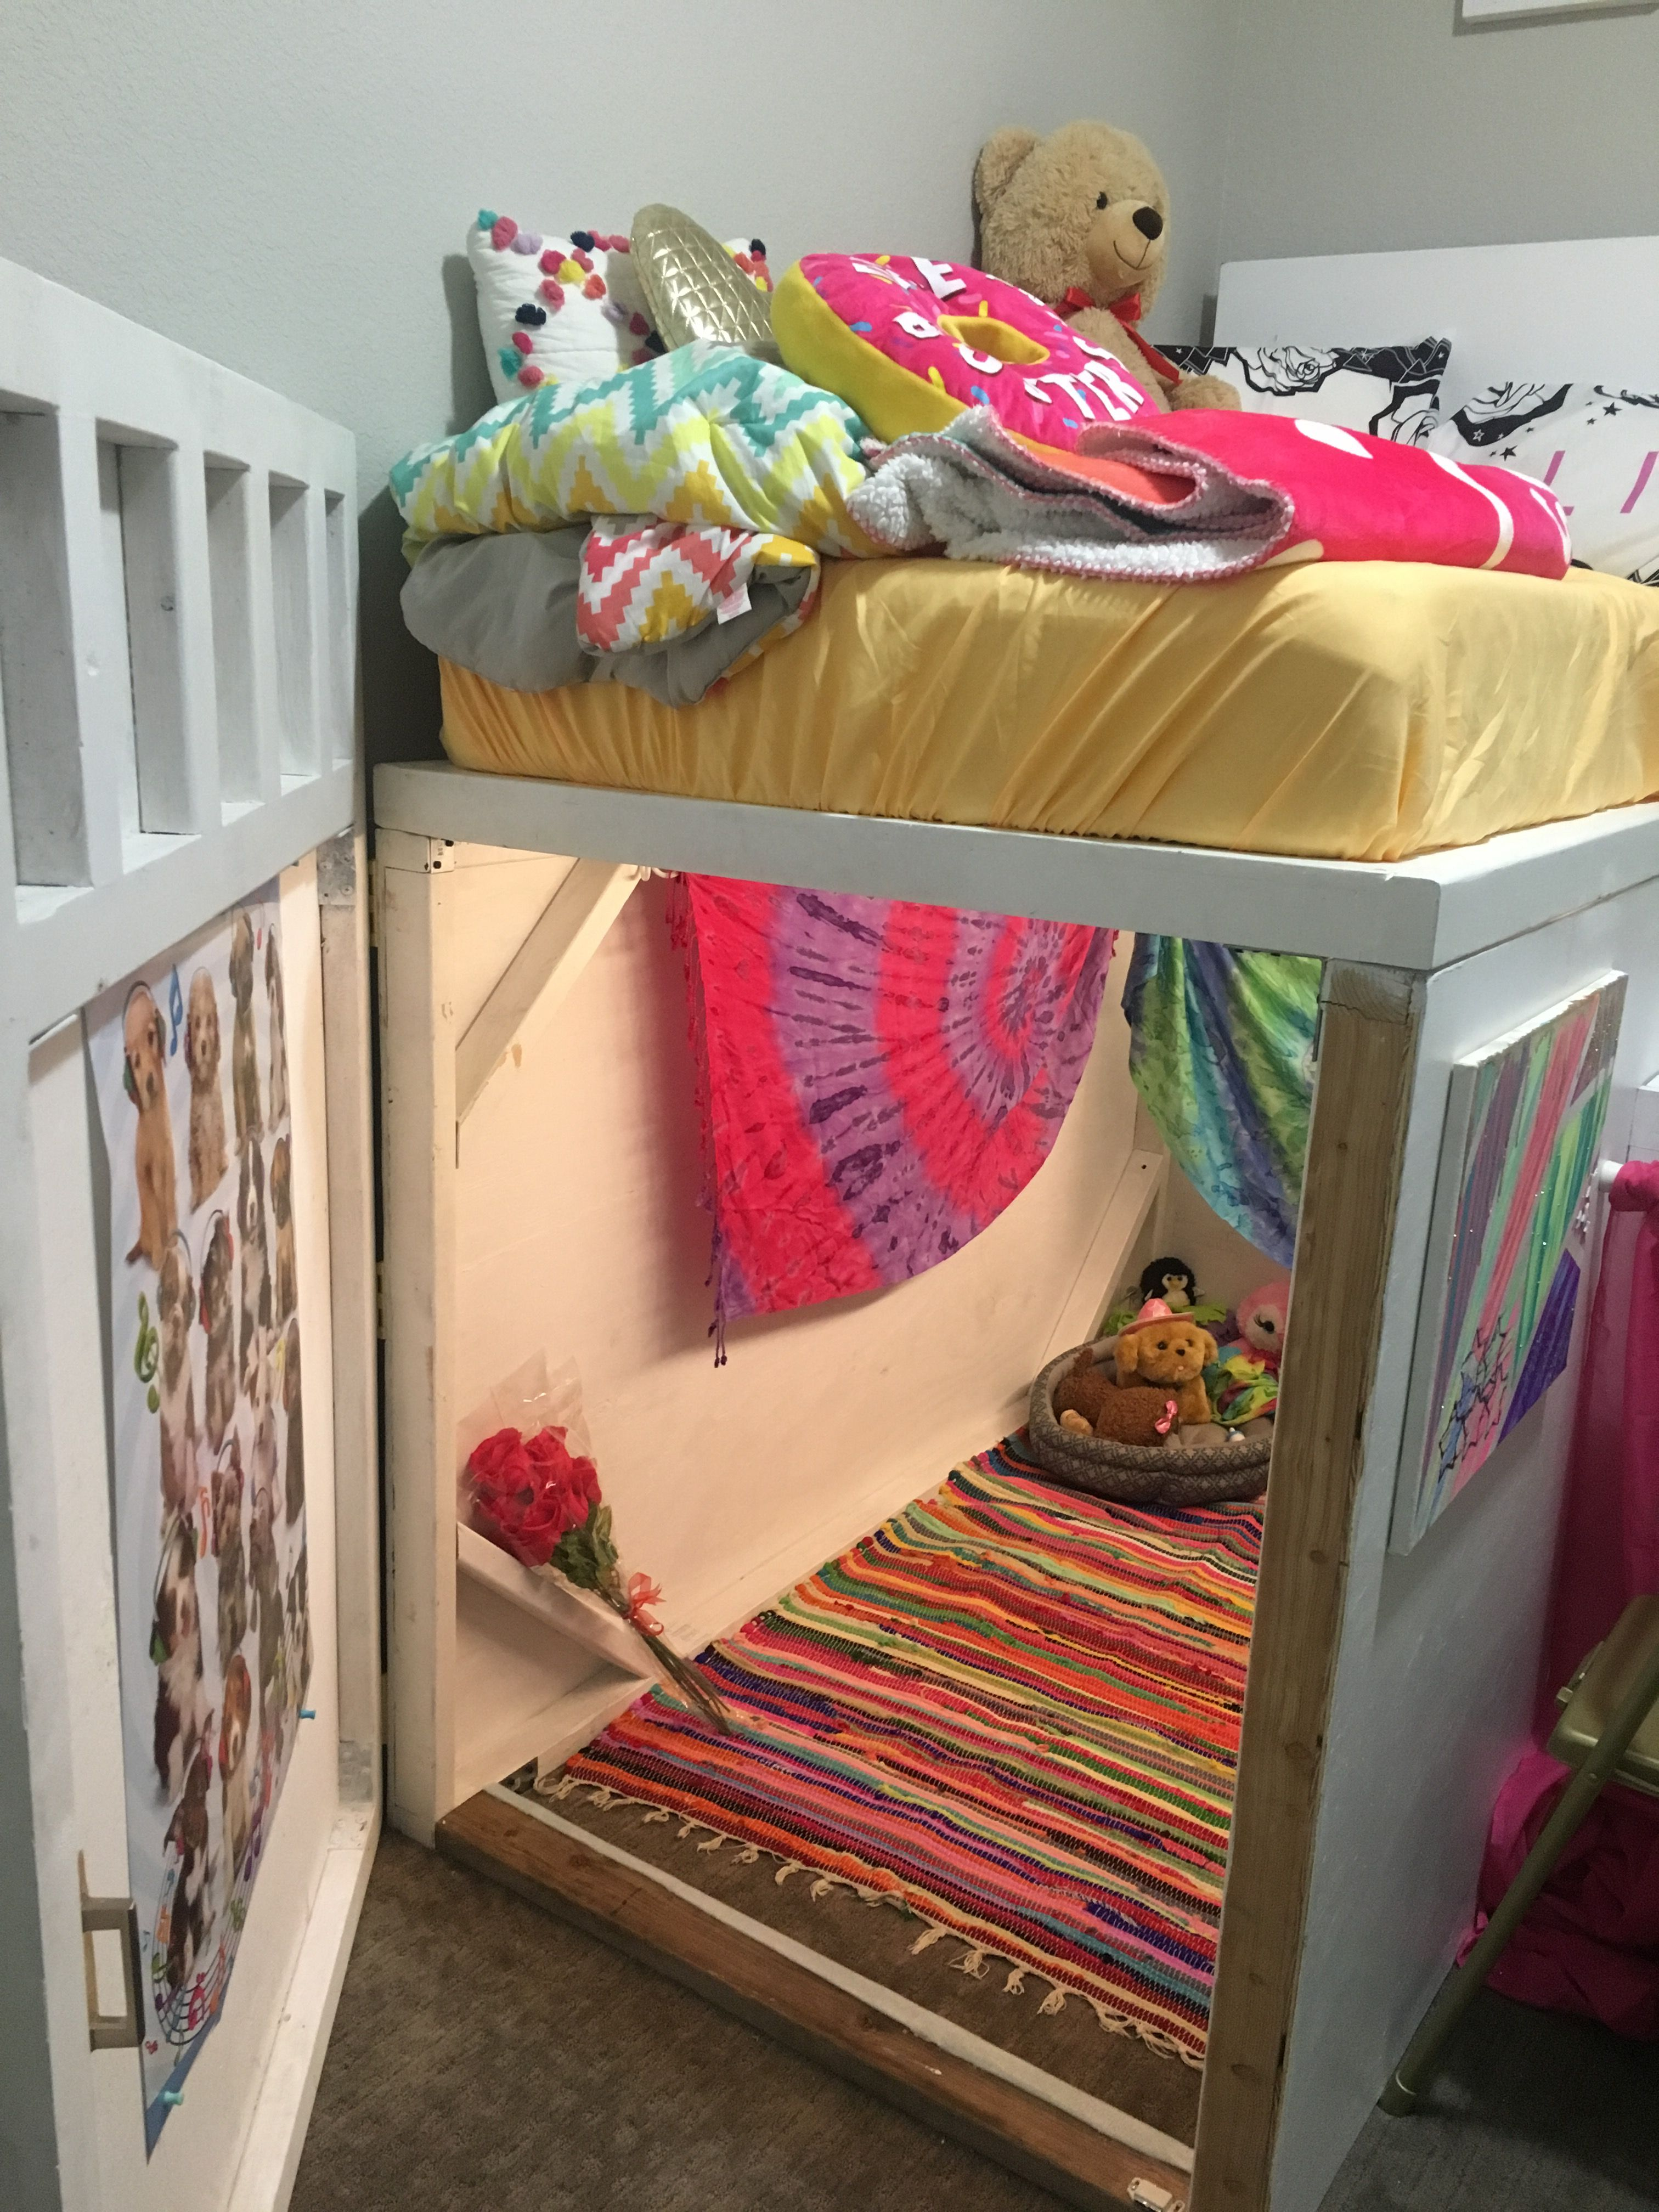 Awesome Spacesaver Bed With Hideout Hidden Underneath And Desk Made For My 10yearold Daughter Girls Loft Bed Diy Loft Bed House Bunk Bed